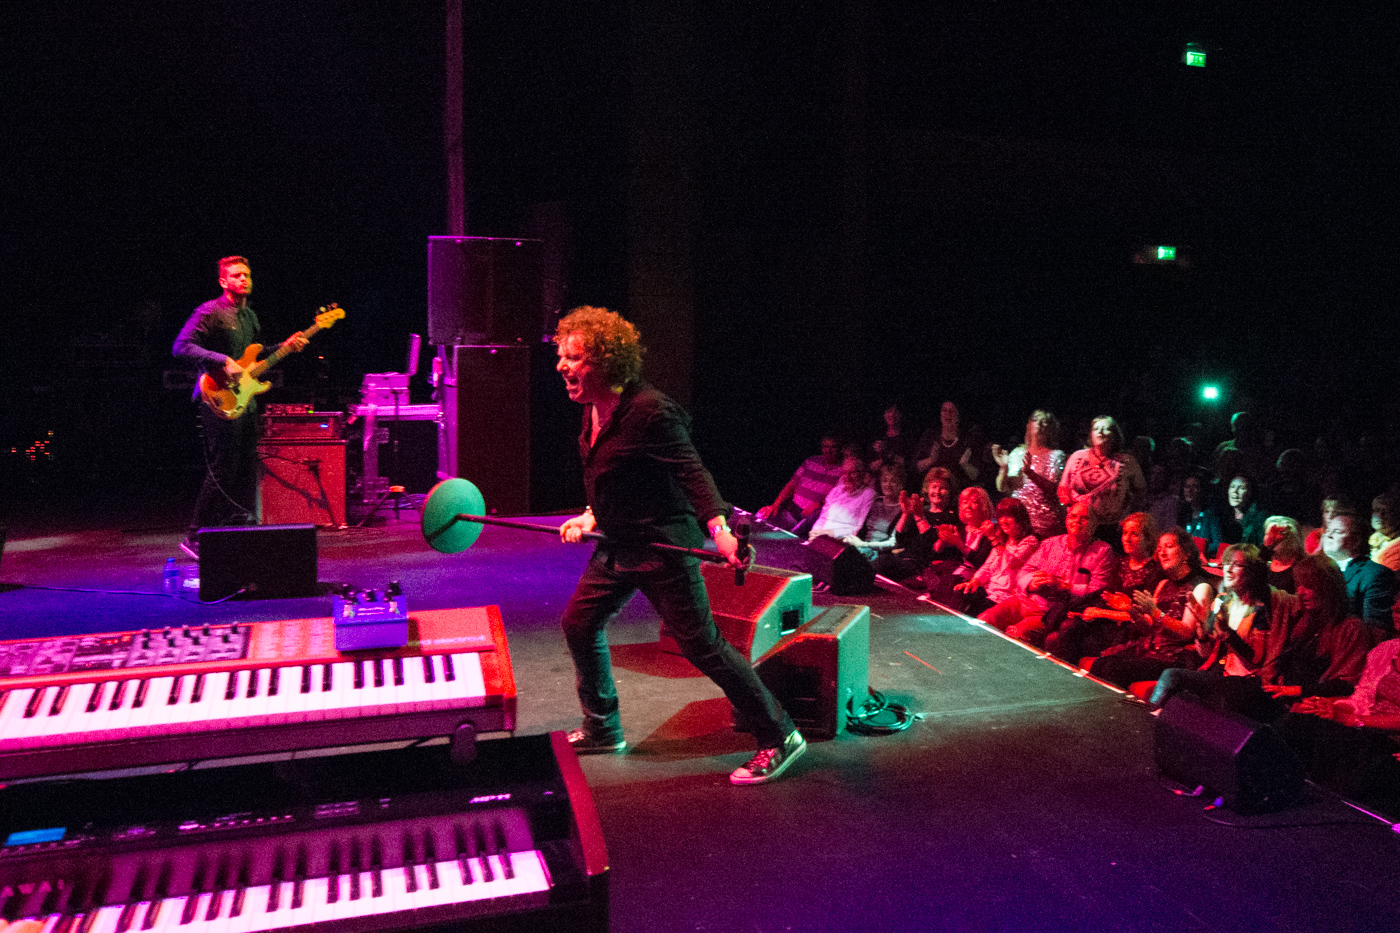 Leo Sayer at Bord Gais Energy Theatre by Sean Smyth (16-10-15) (96 of 129)